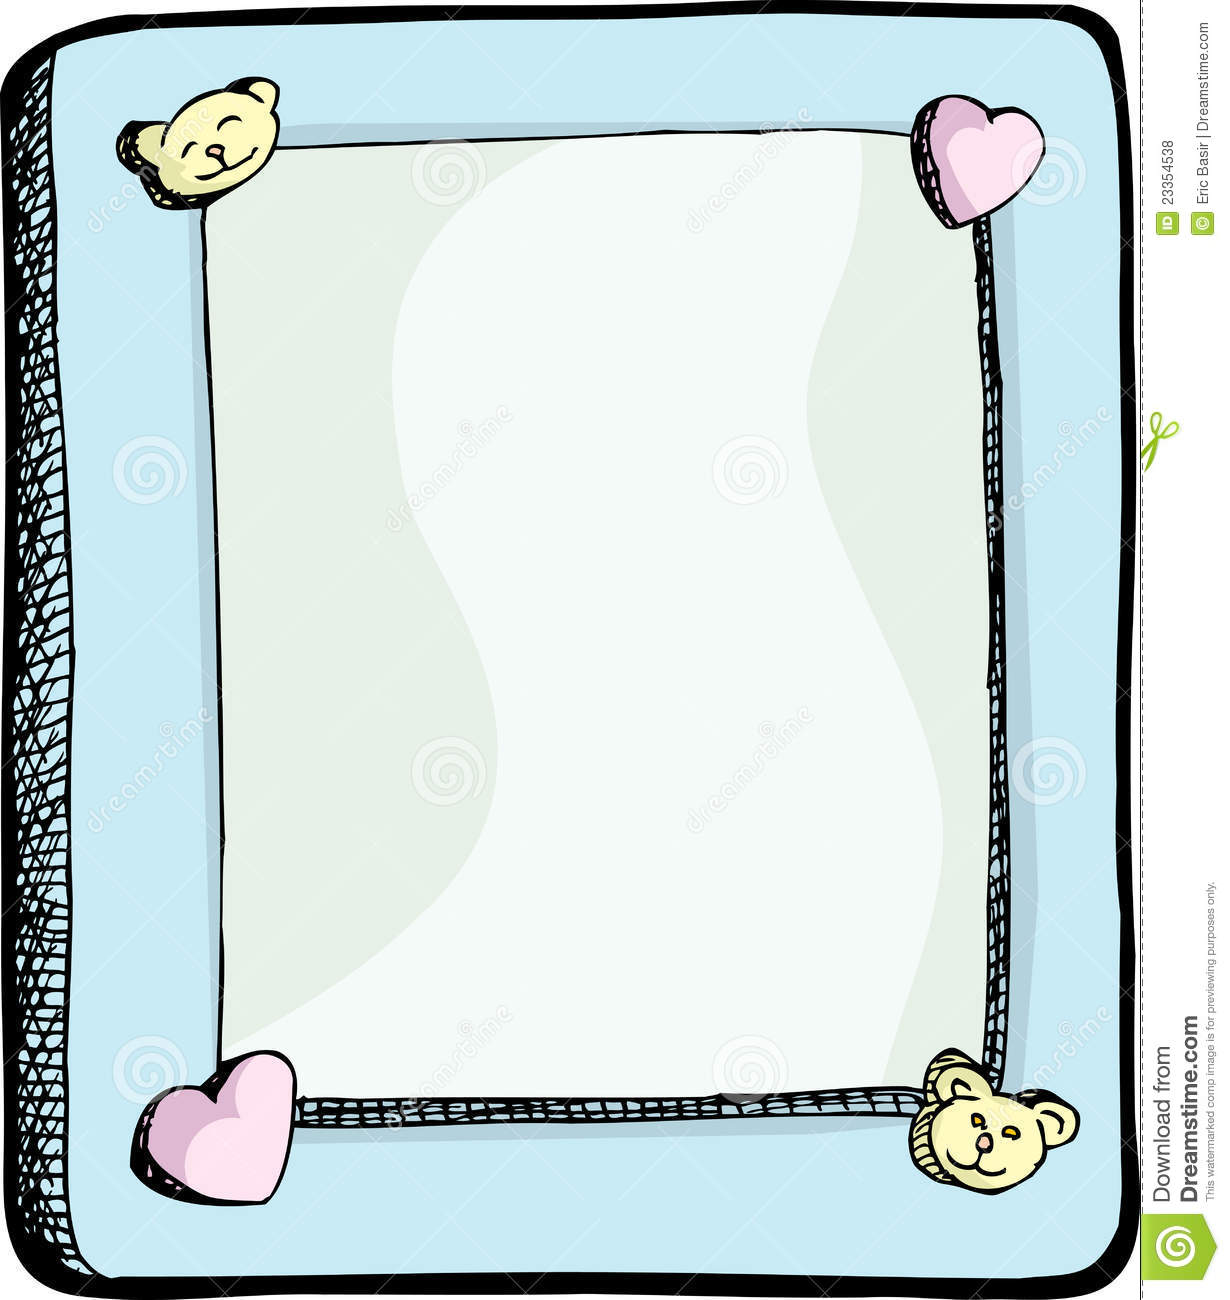 Cute Picture Frame Royalty Free Stock Photos - Image: 23354538